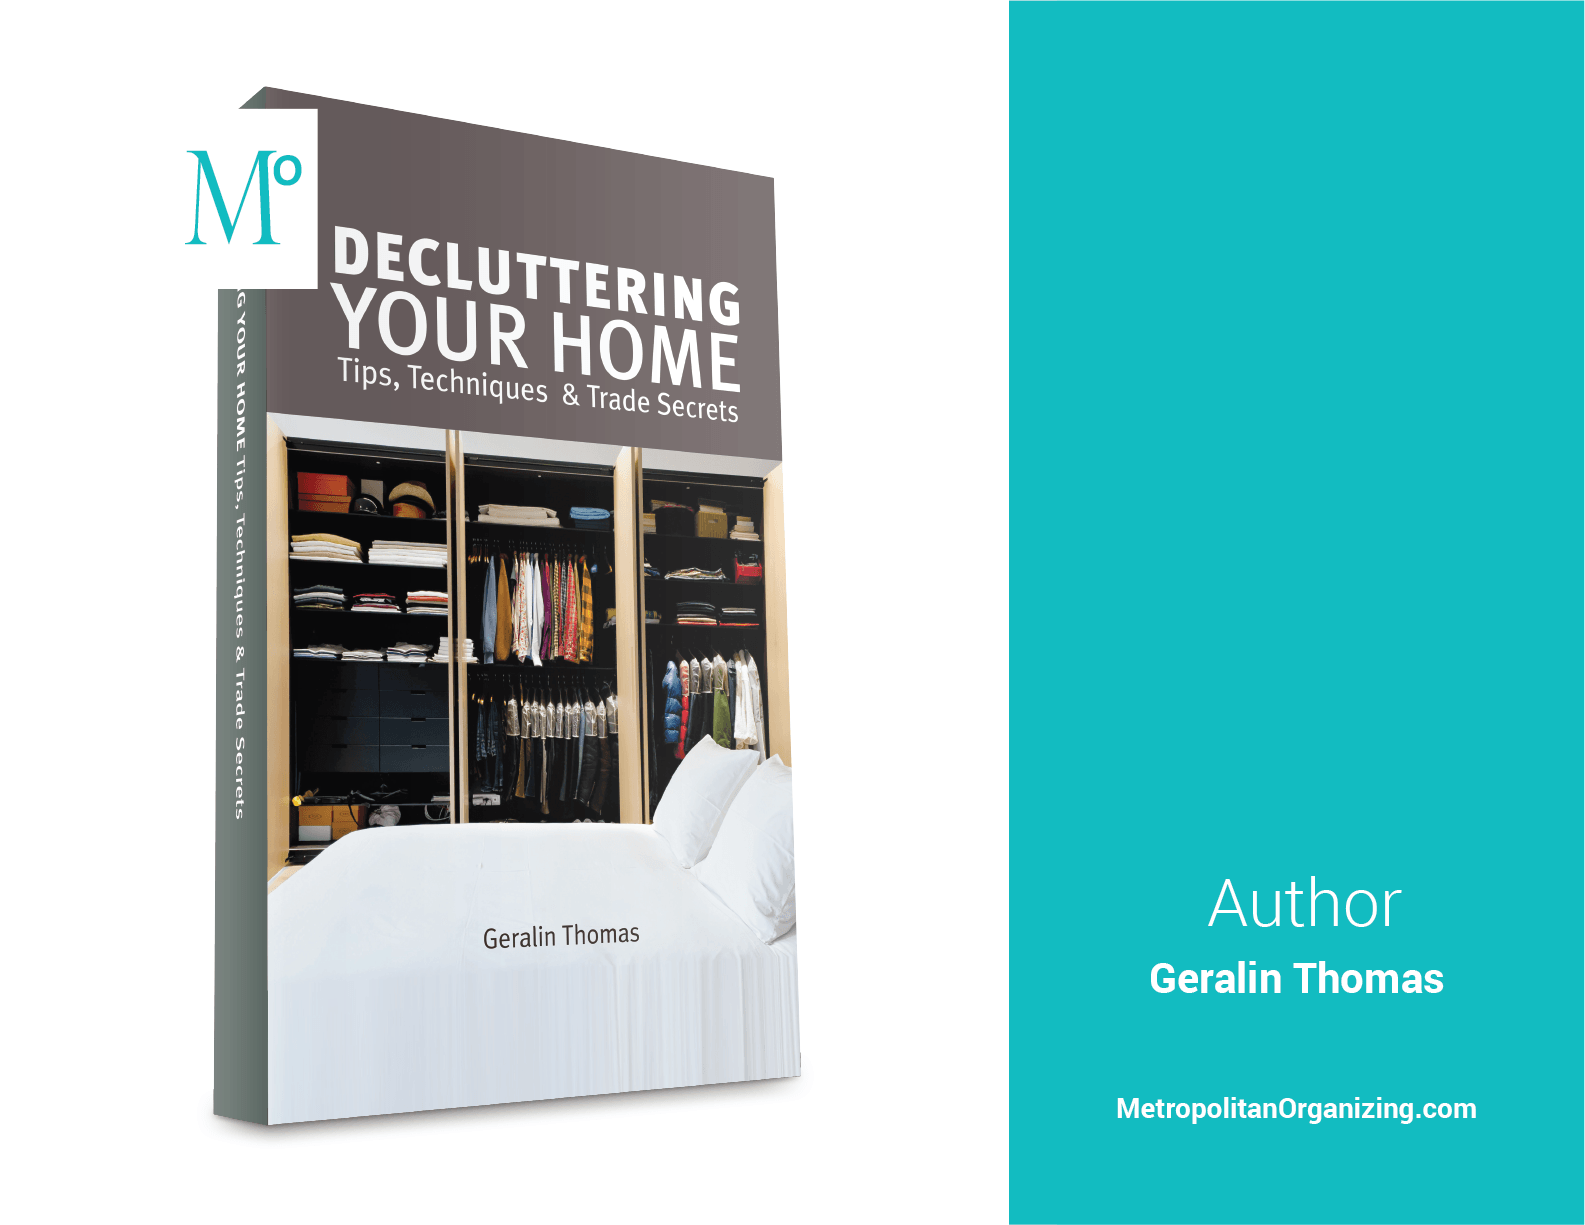 Declutter Your Home Details Here